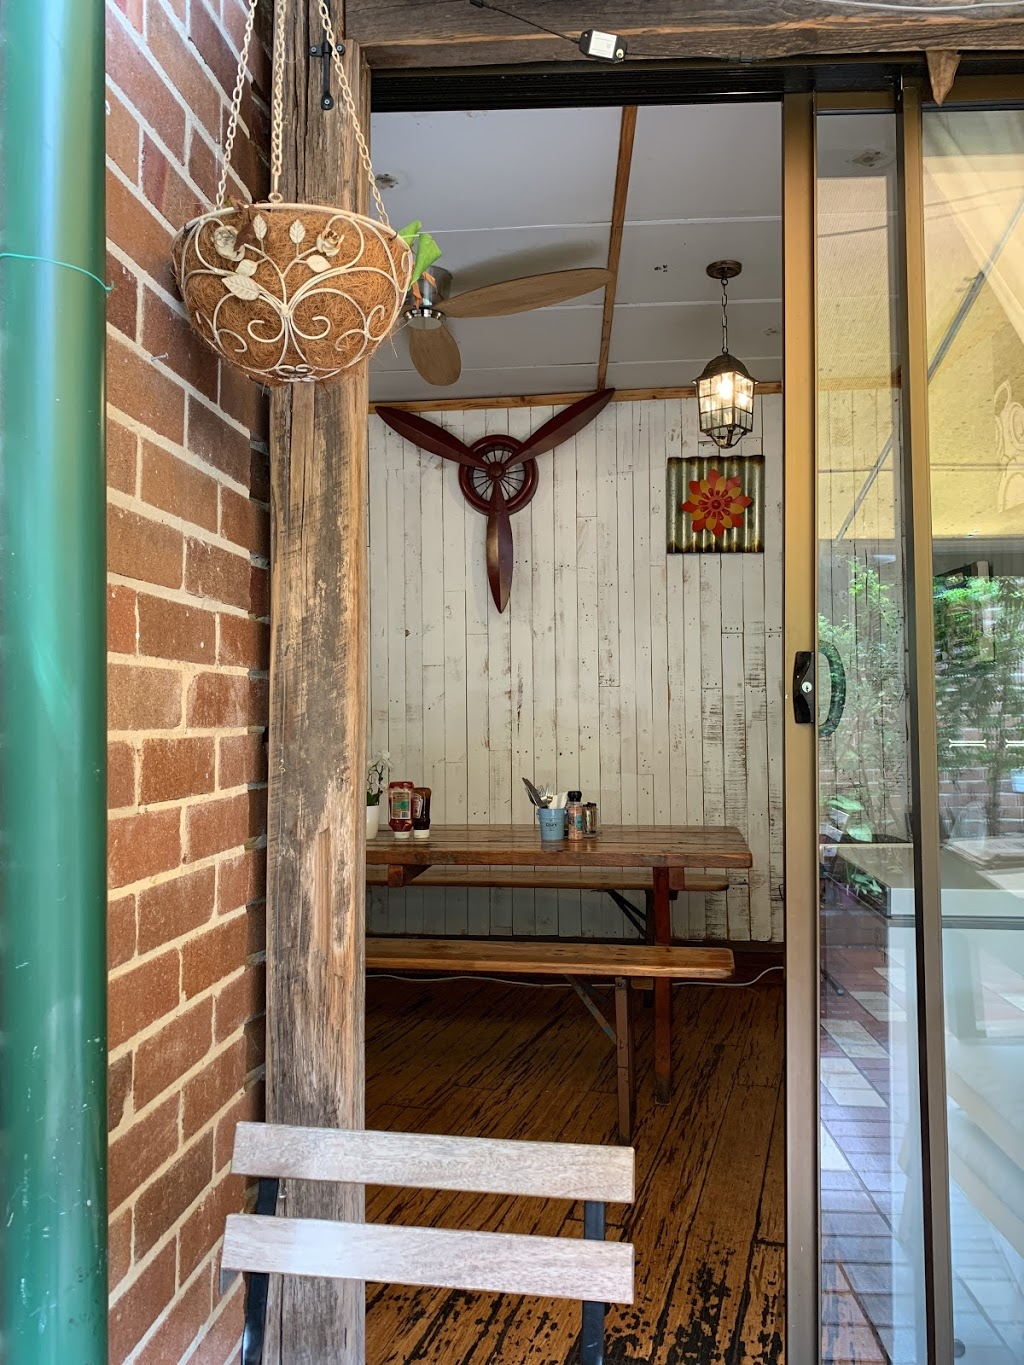 COZY | cafe | Shop 5/308-310 Darling St, Balmain NSW 2041, Australia | 0452384860 OR +61 452 384 860